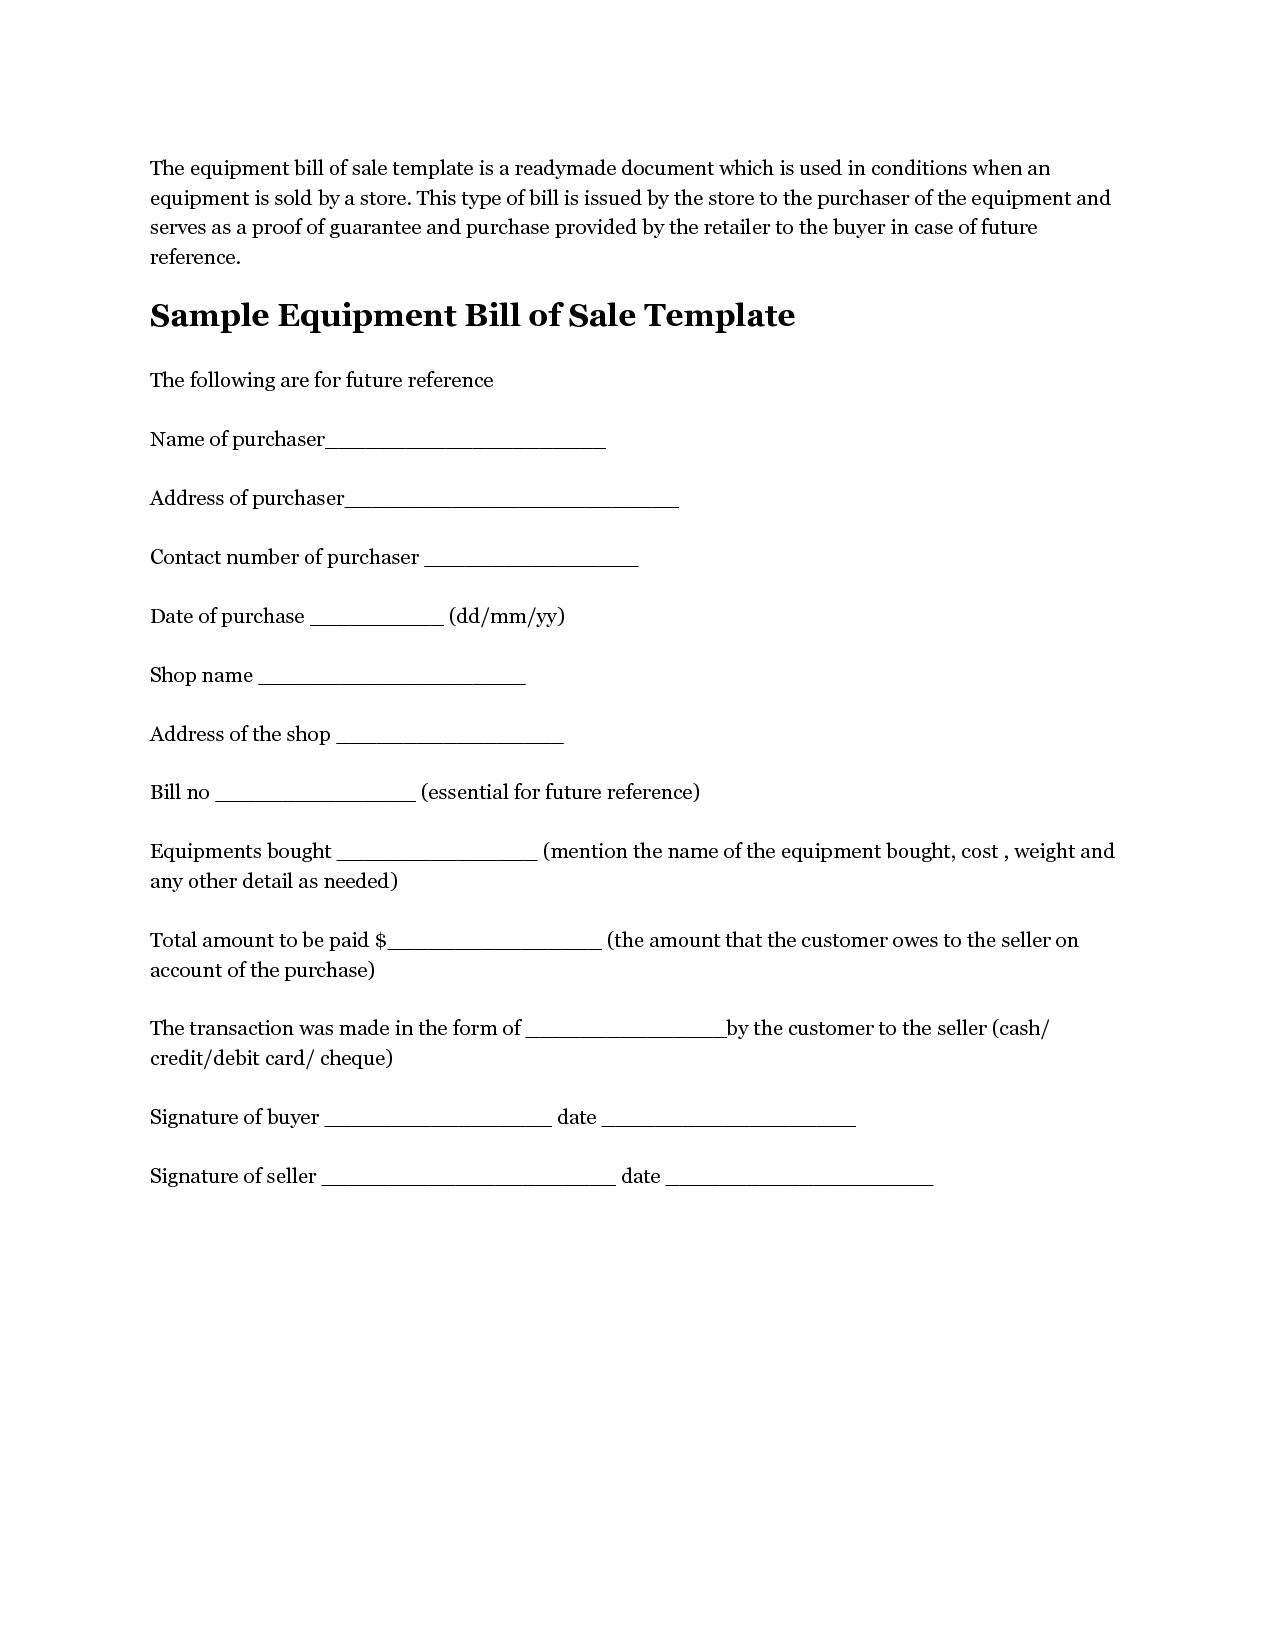 Printable Sample Equipment Bill Of Sale Template Form  Laywers